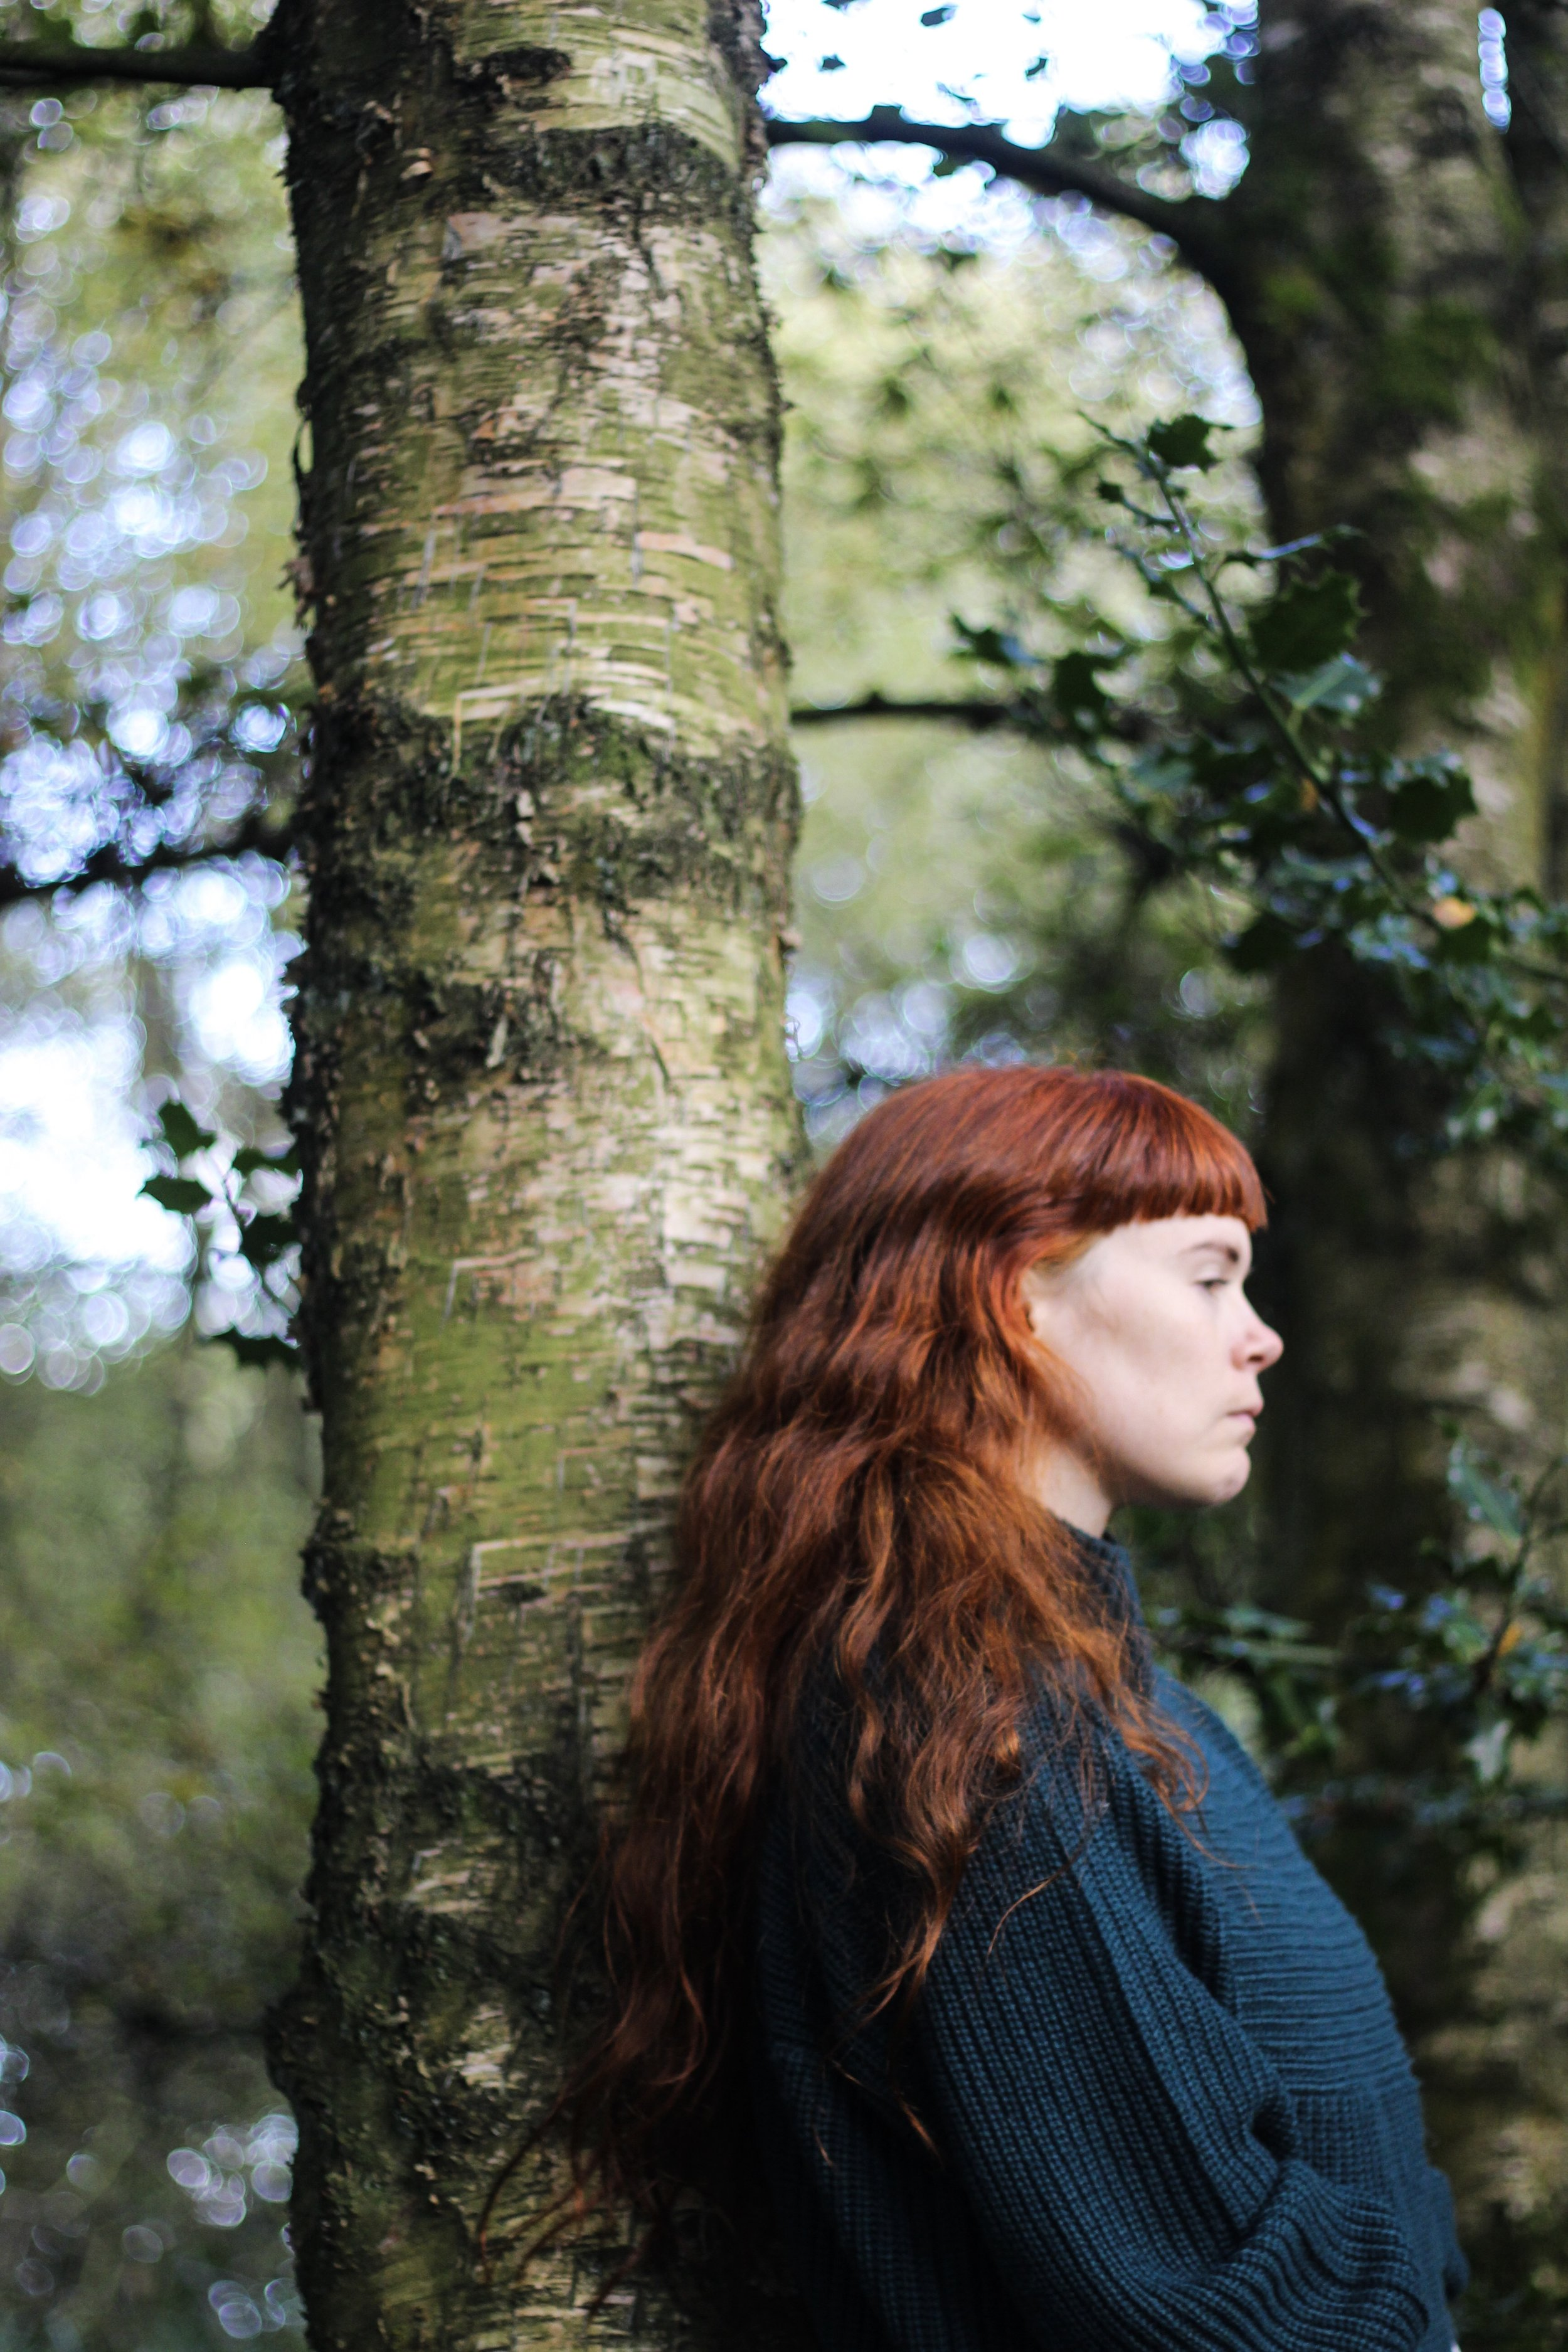 Girl with red hair in woods